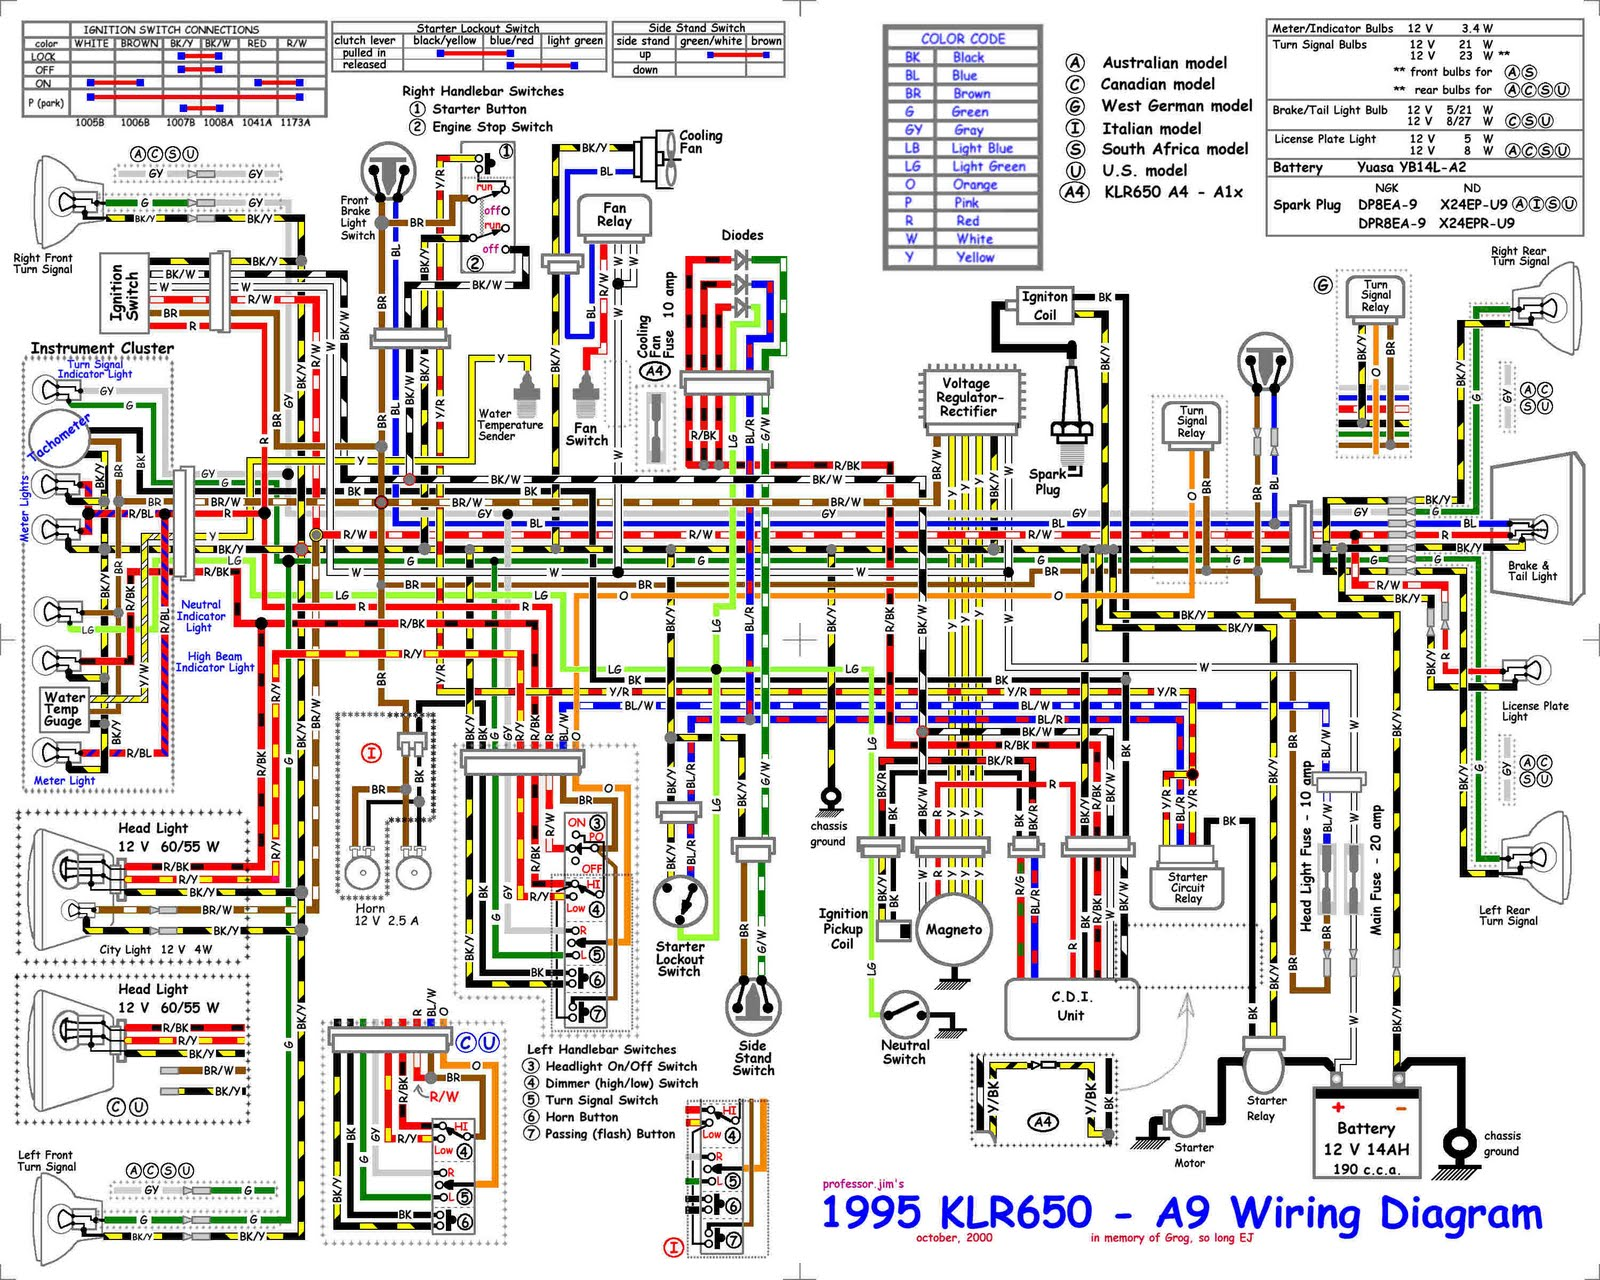 68ef308d7ad7b2abaa01c3cfb3b77063 on 1989 klr 250 wiring diagram